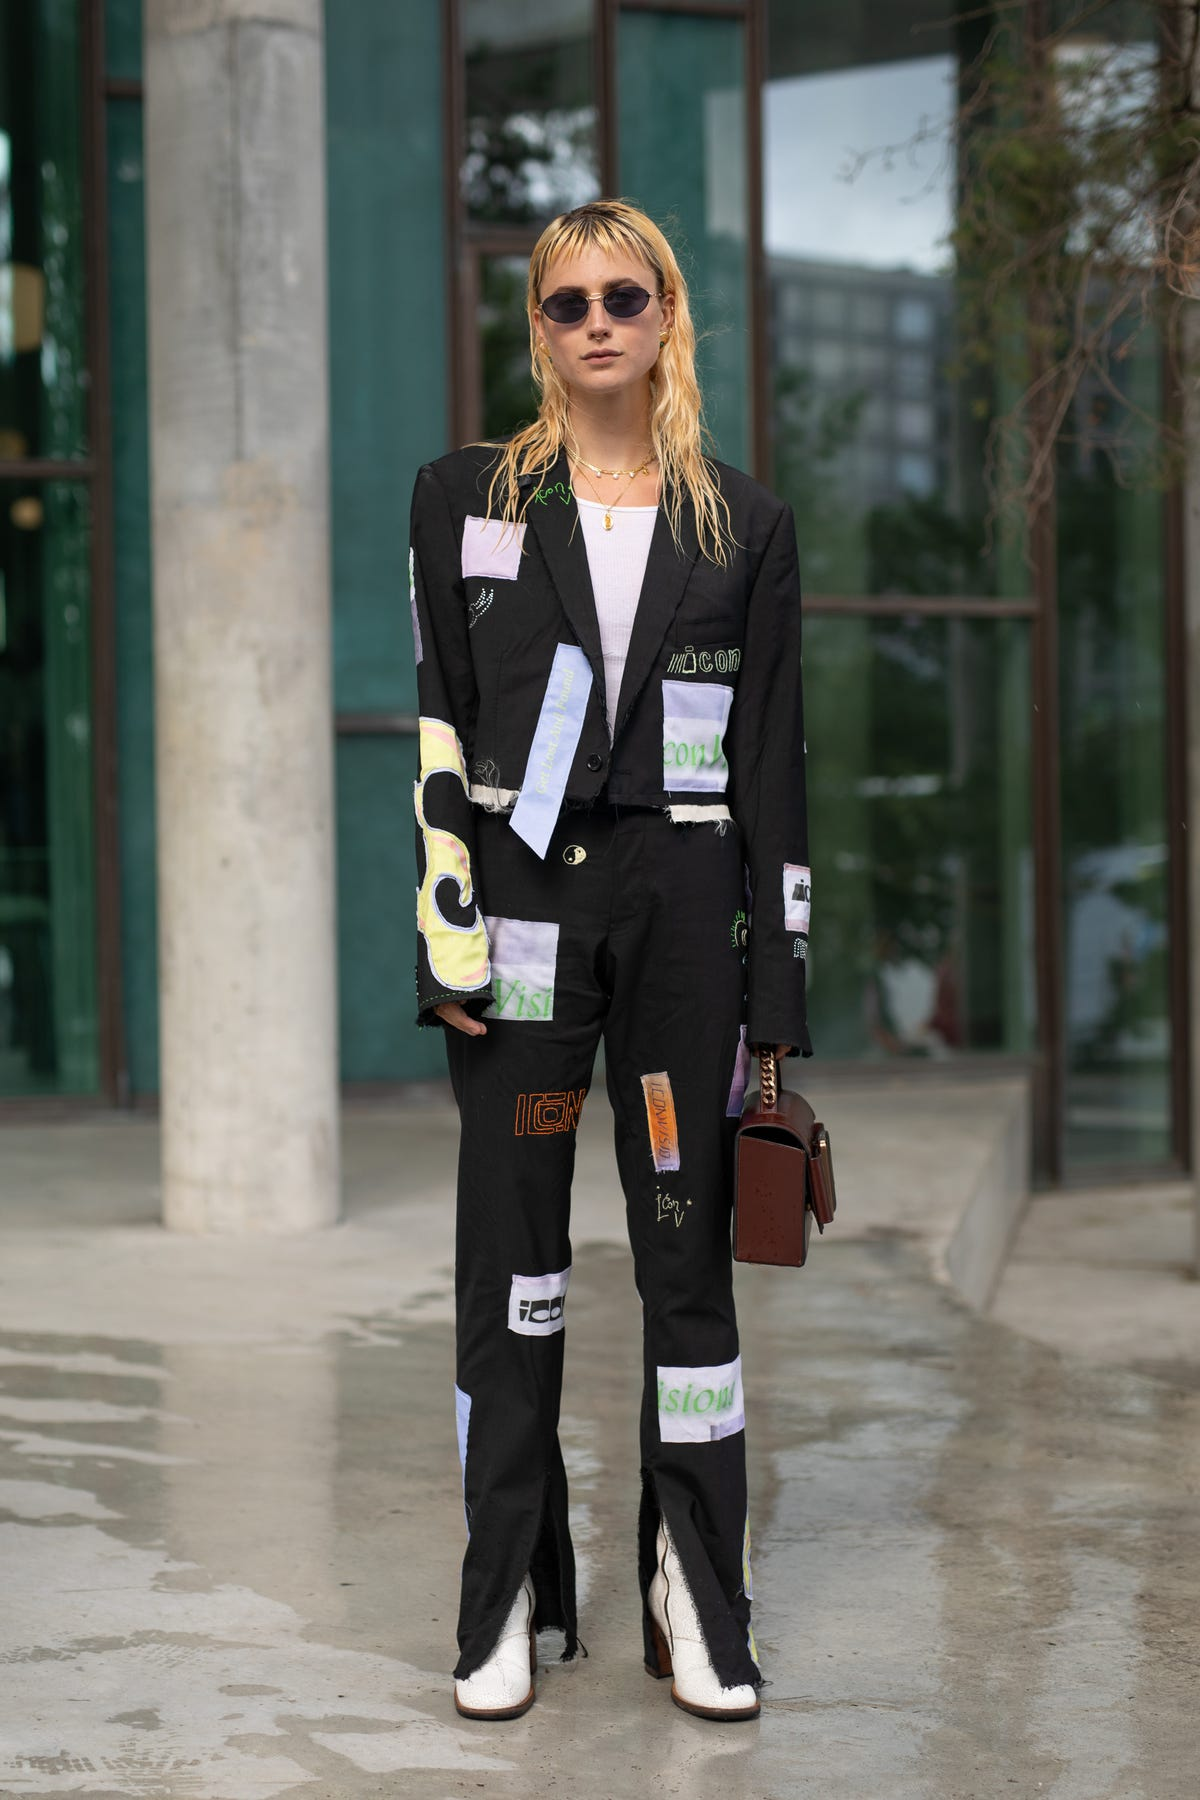 Image result for copenhagen fashion week street style refinery29 patchwork suit